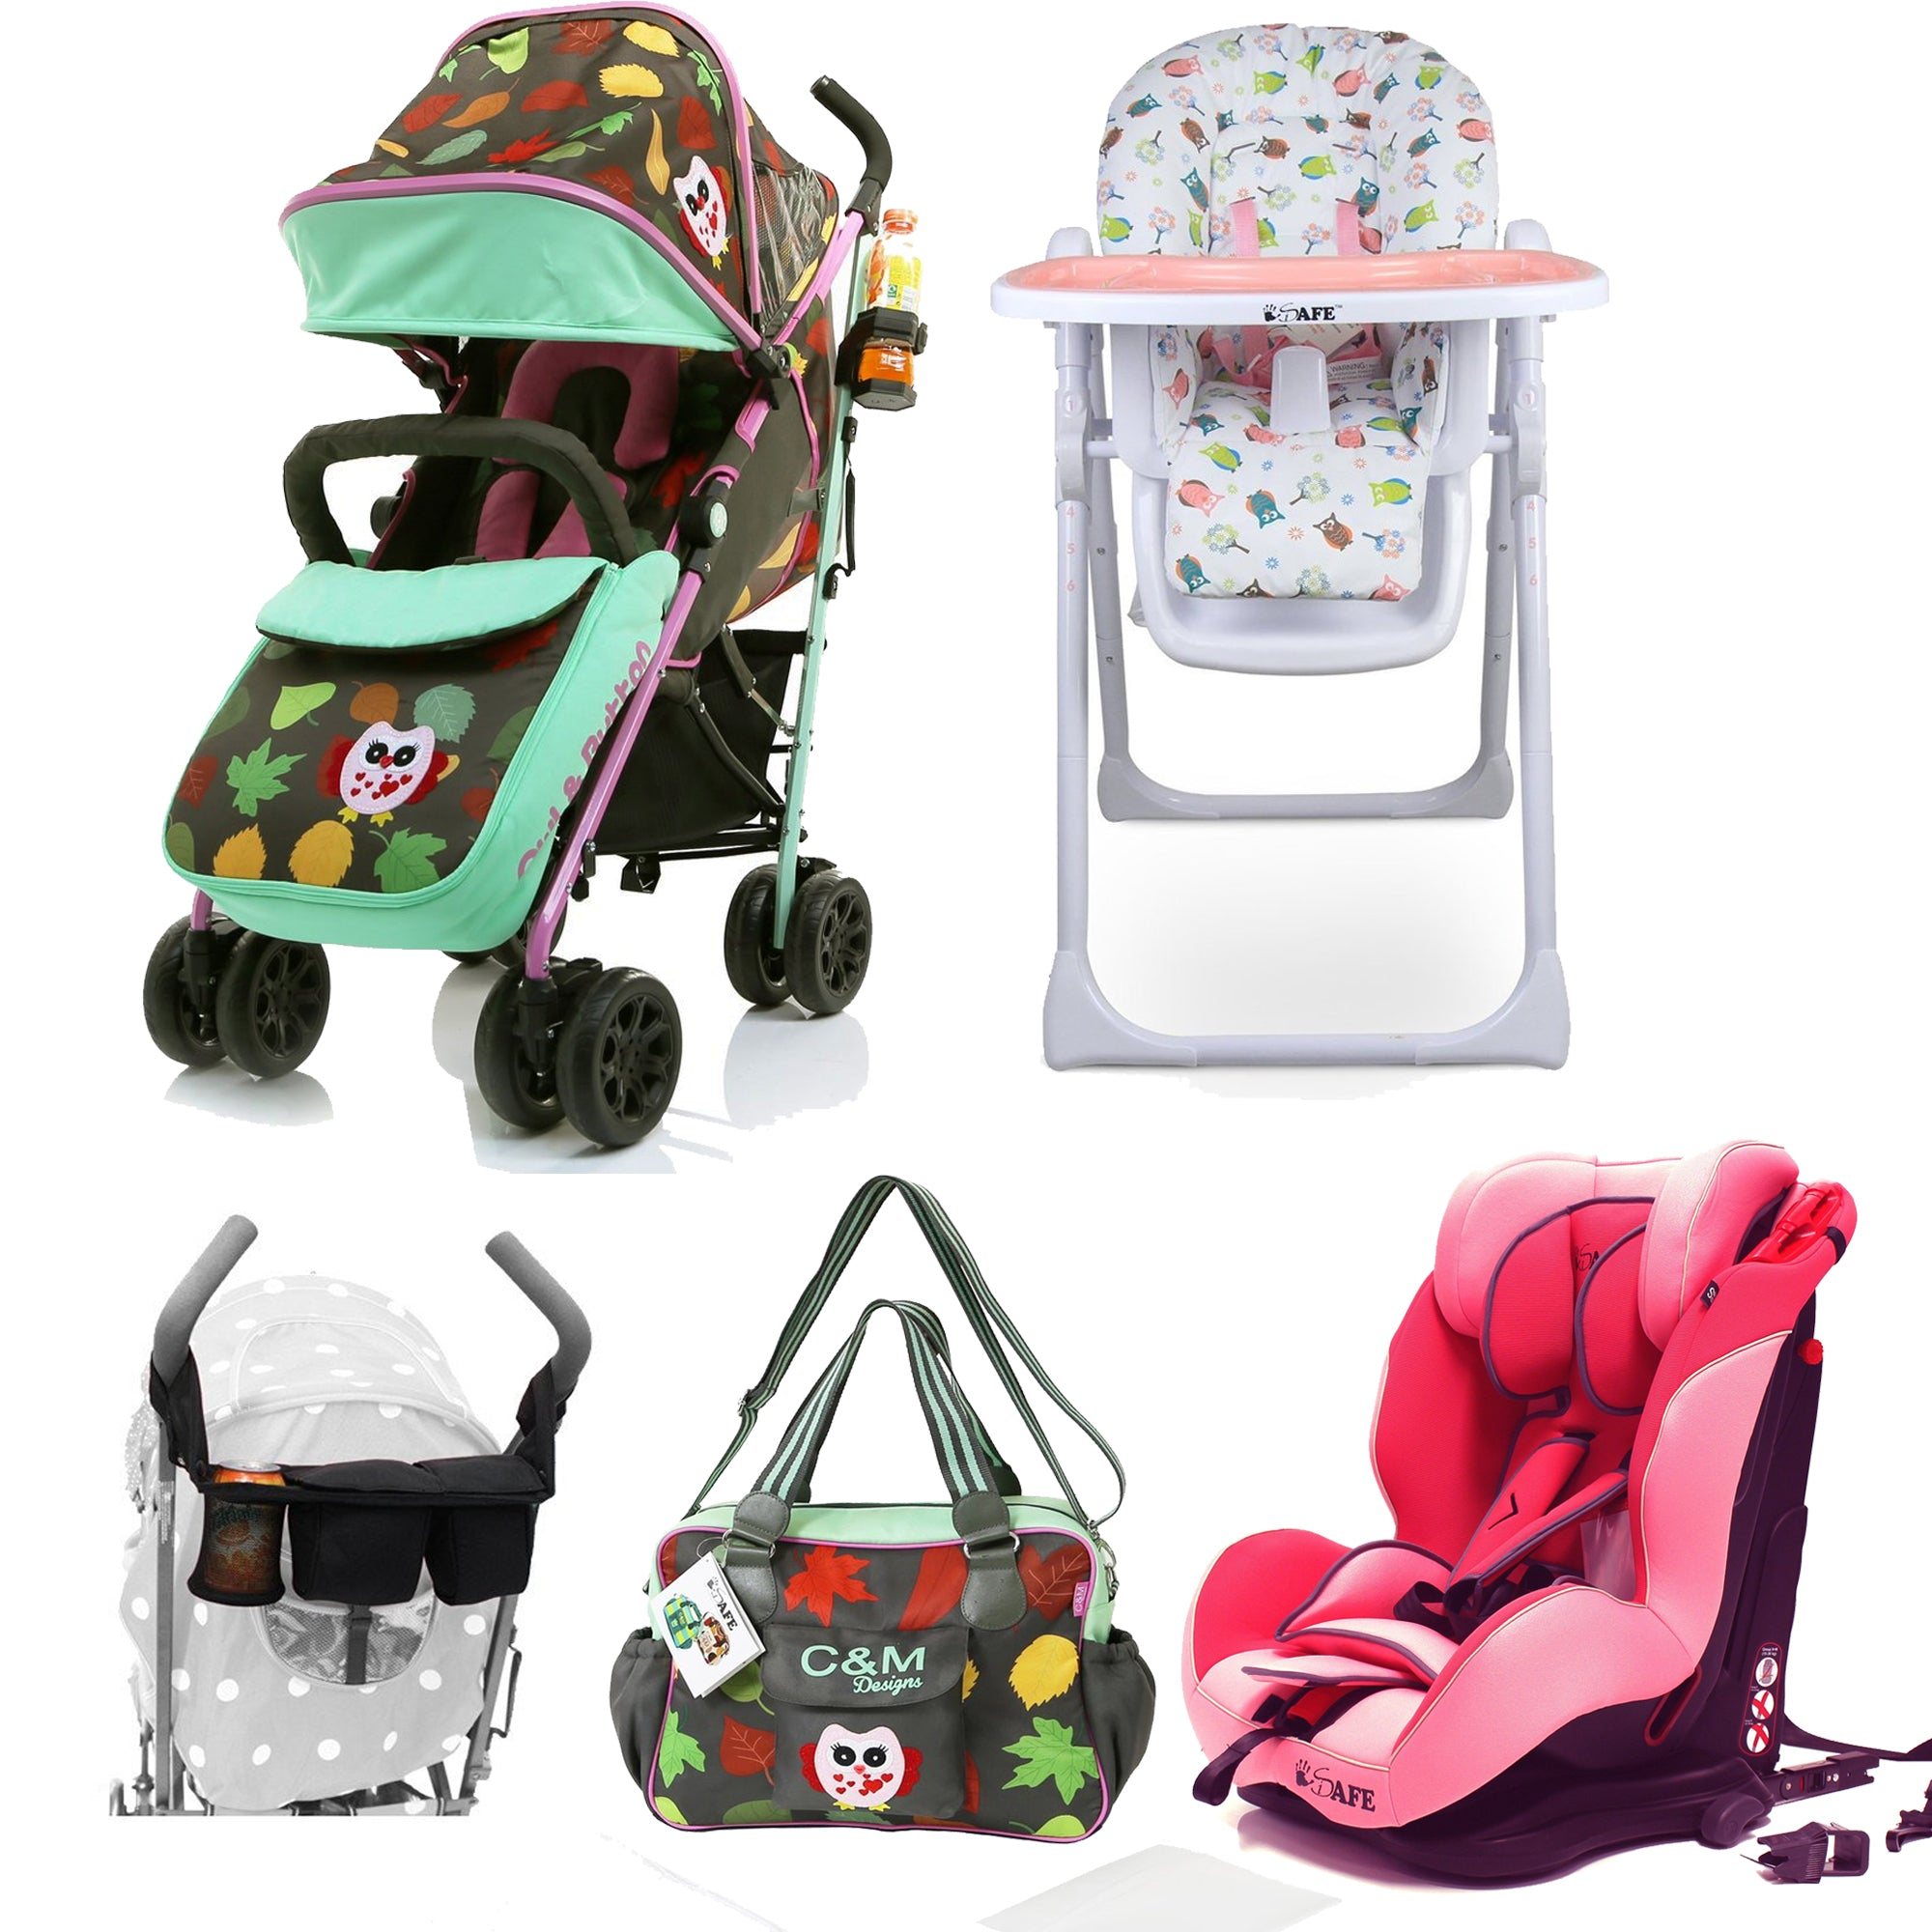 2018 Essential Bundle Package Girls Pink Design Stroller All Stages Car Seat High Chair Accessories